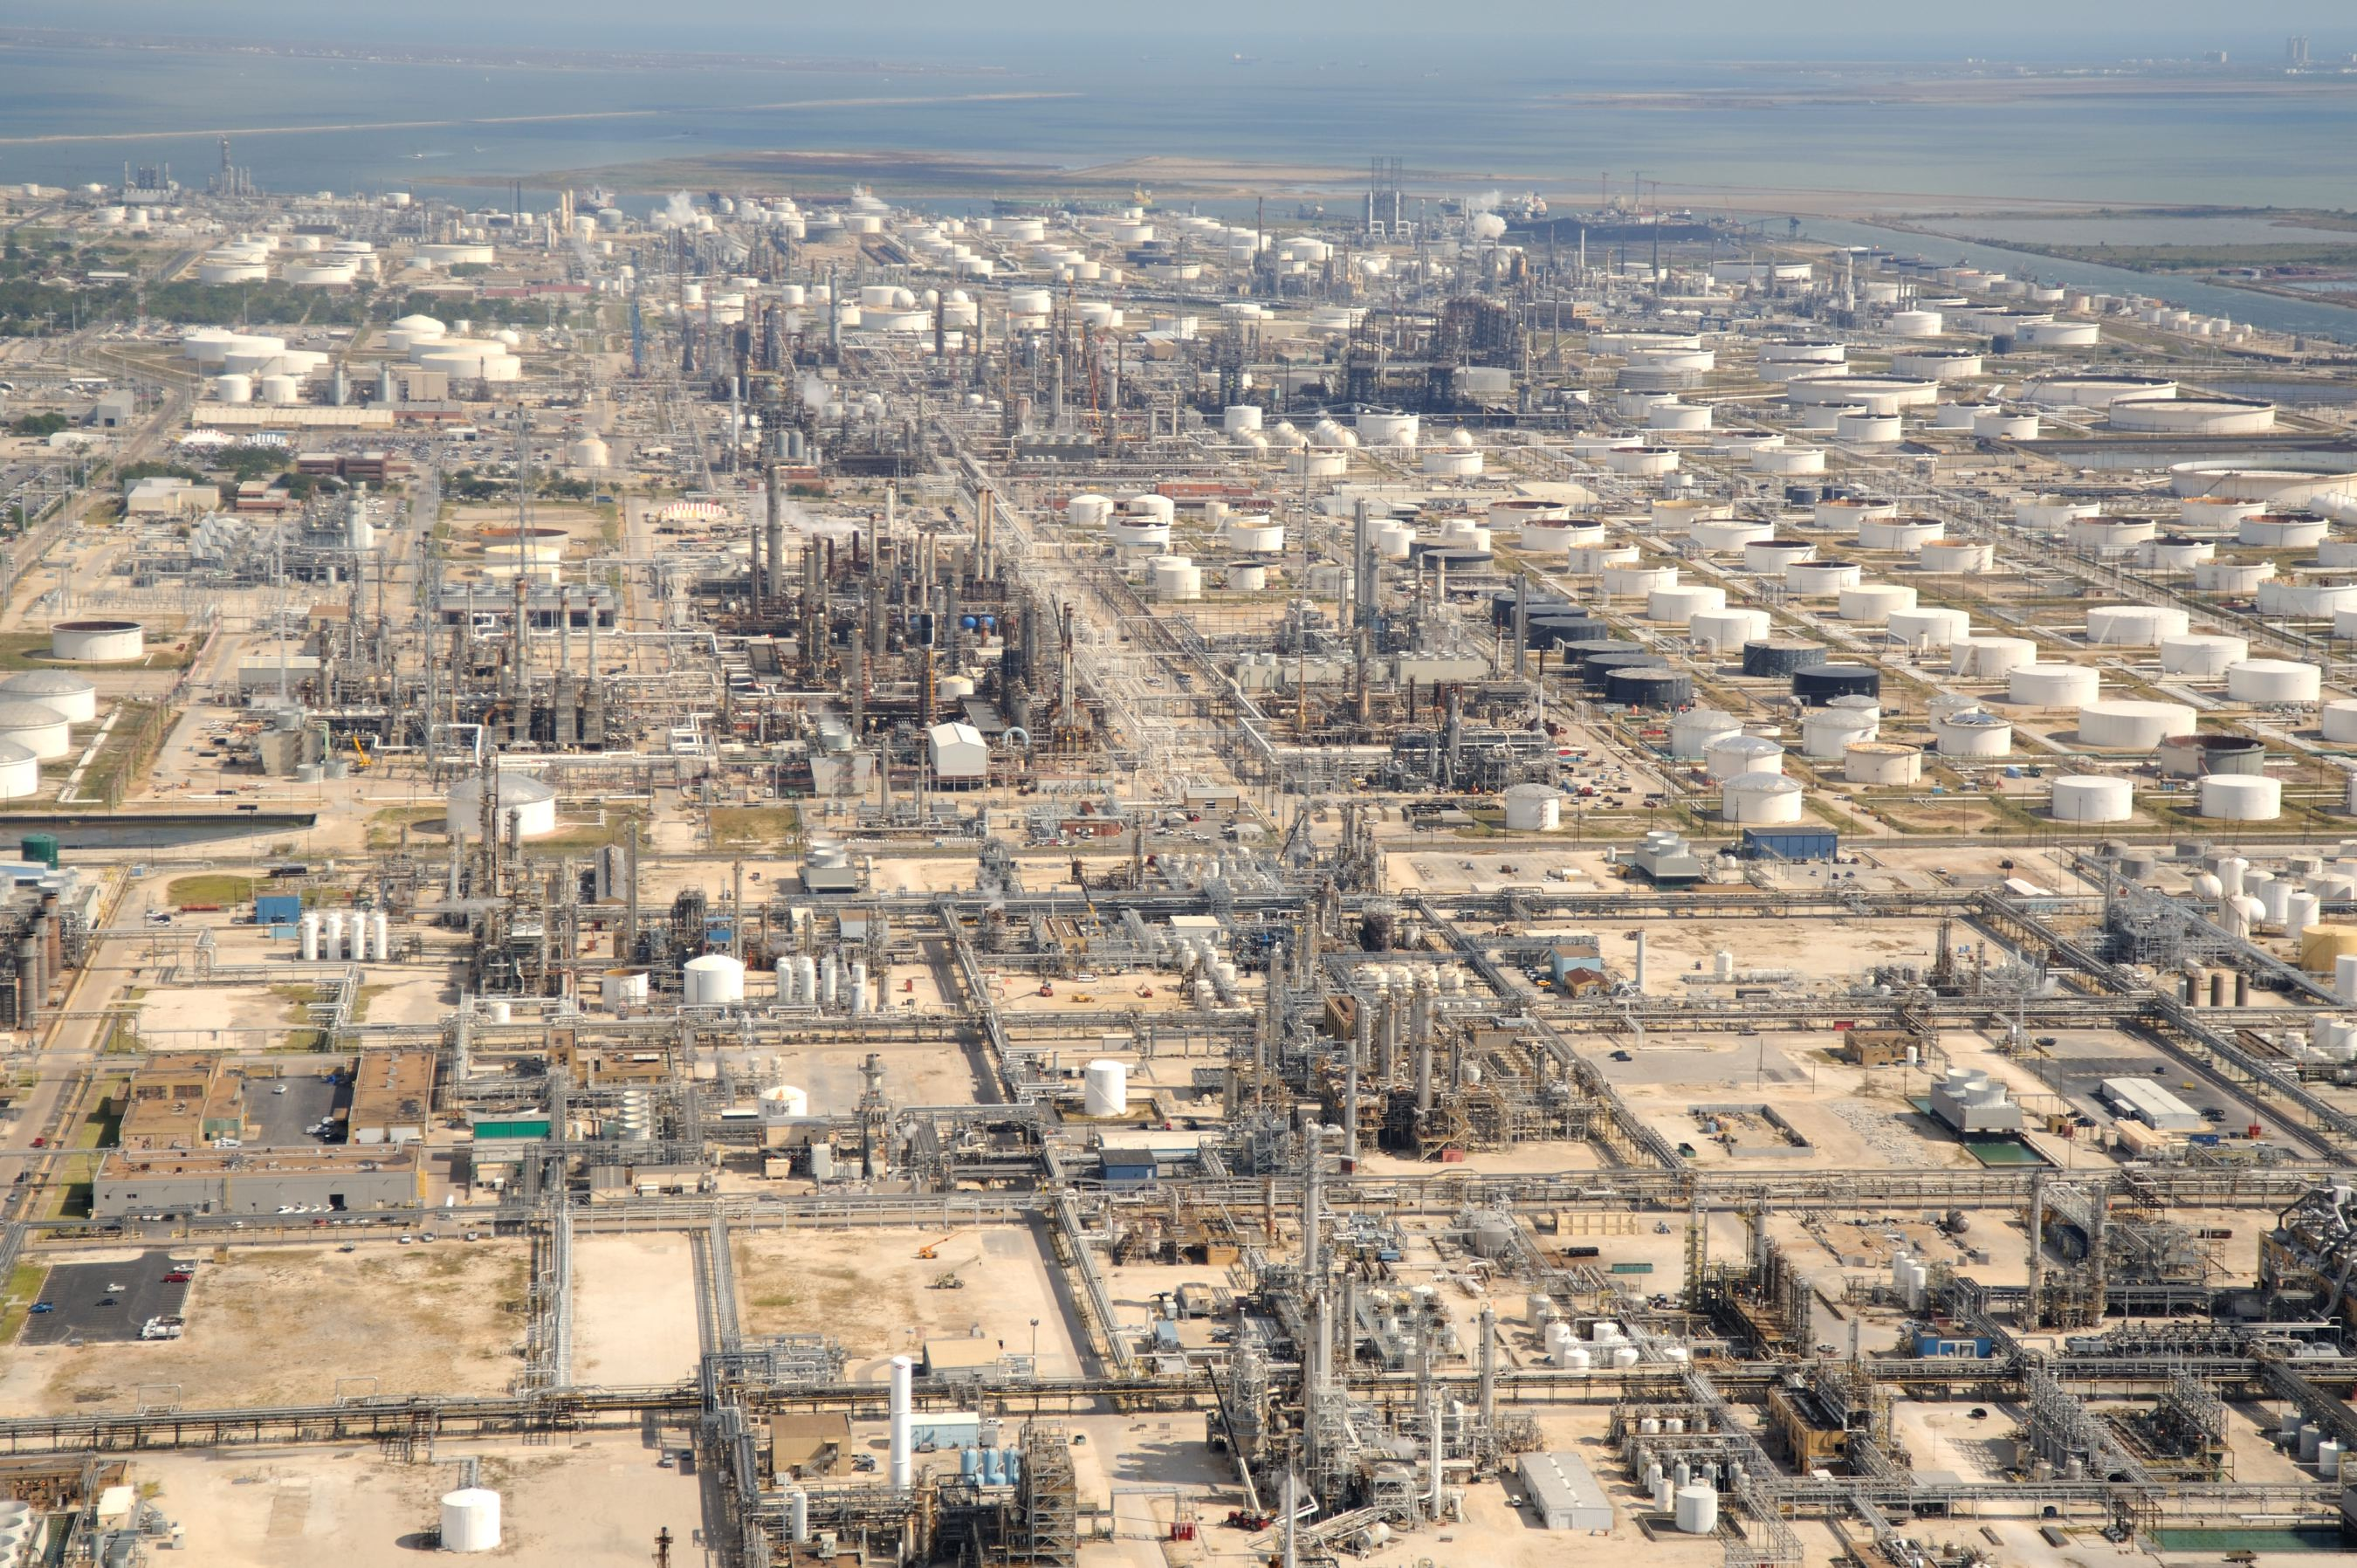 A view from Marathon's Galveston bay refinery (courtesy of The Center for Land Use Interpretation)